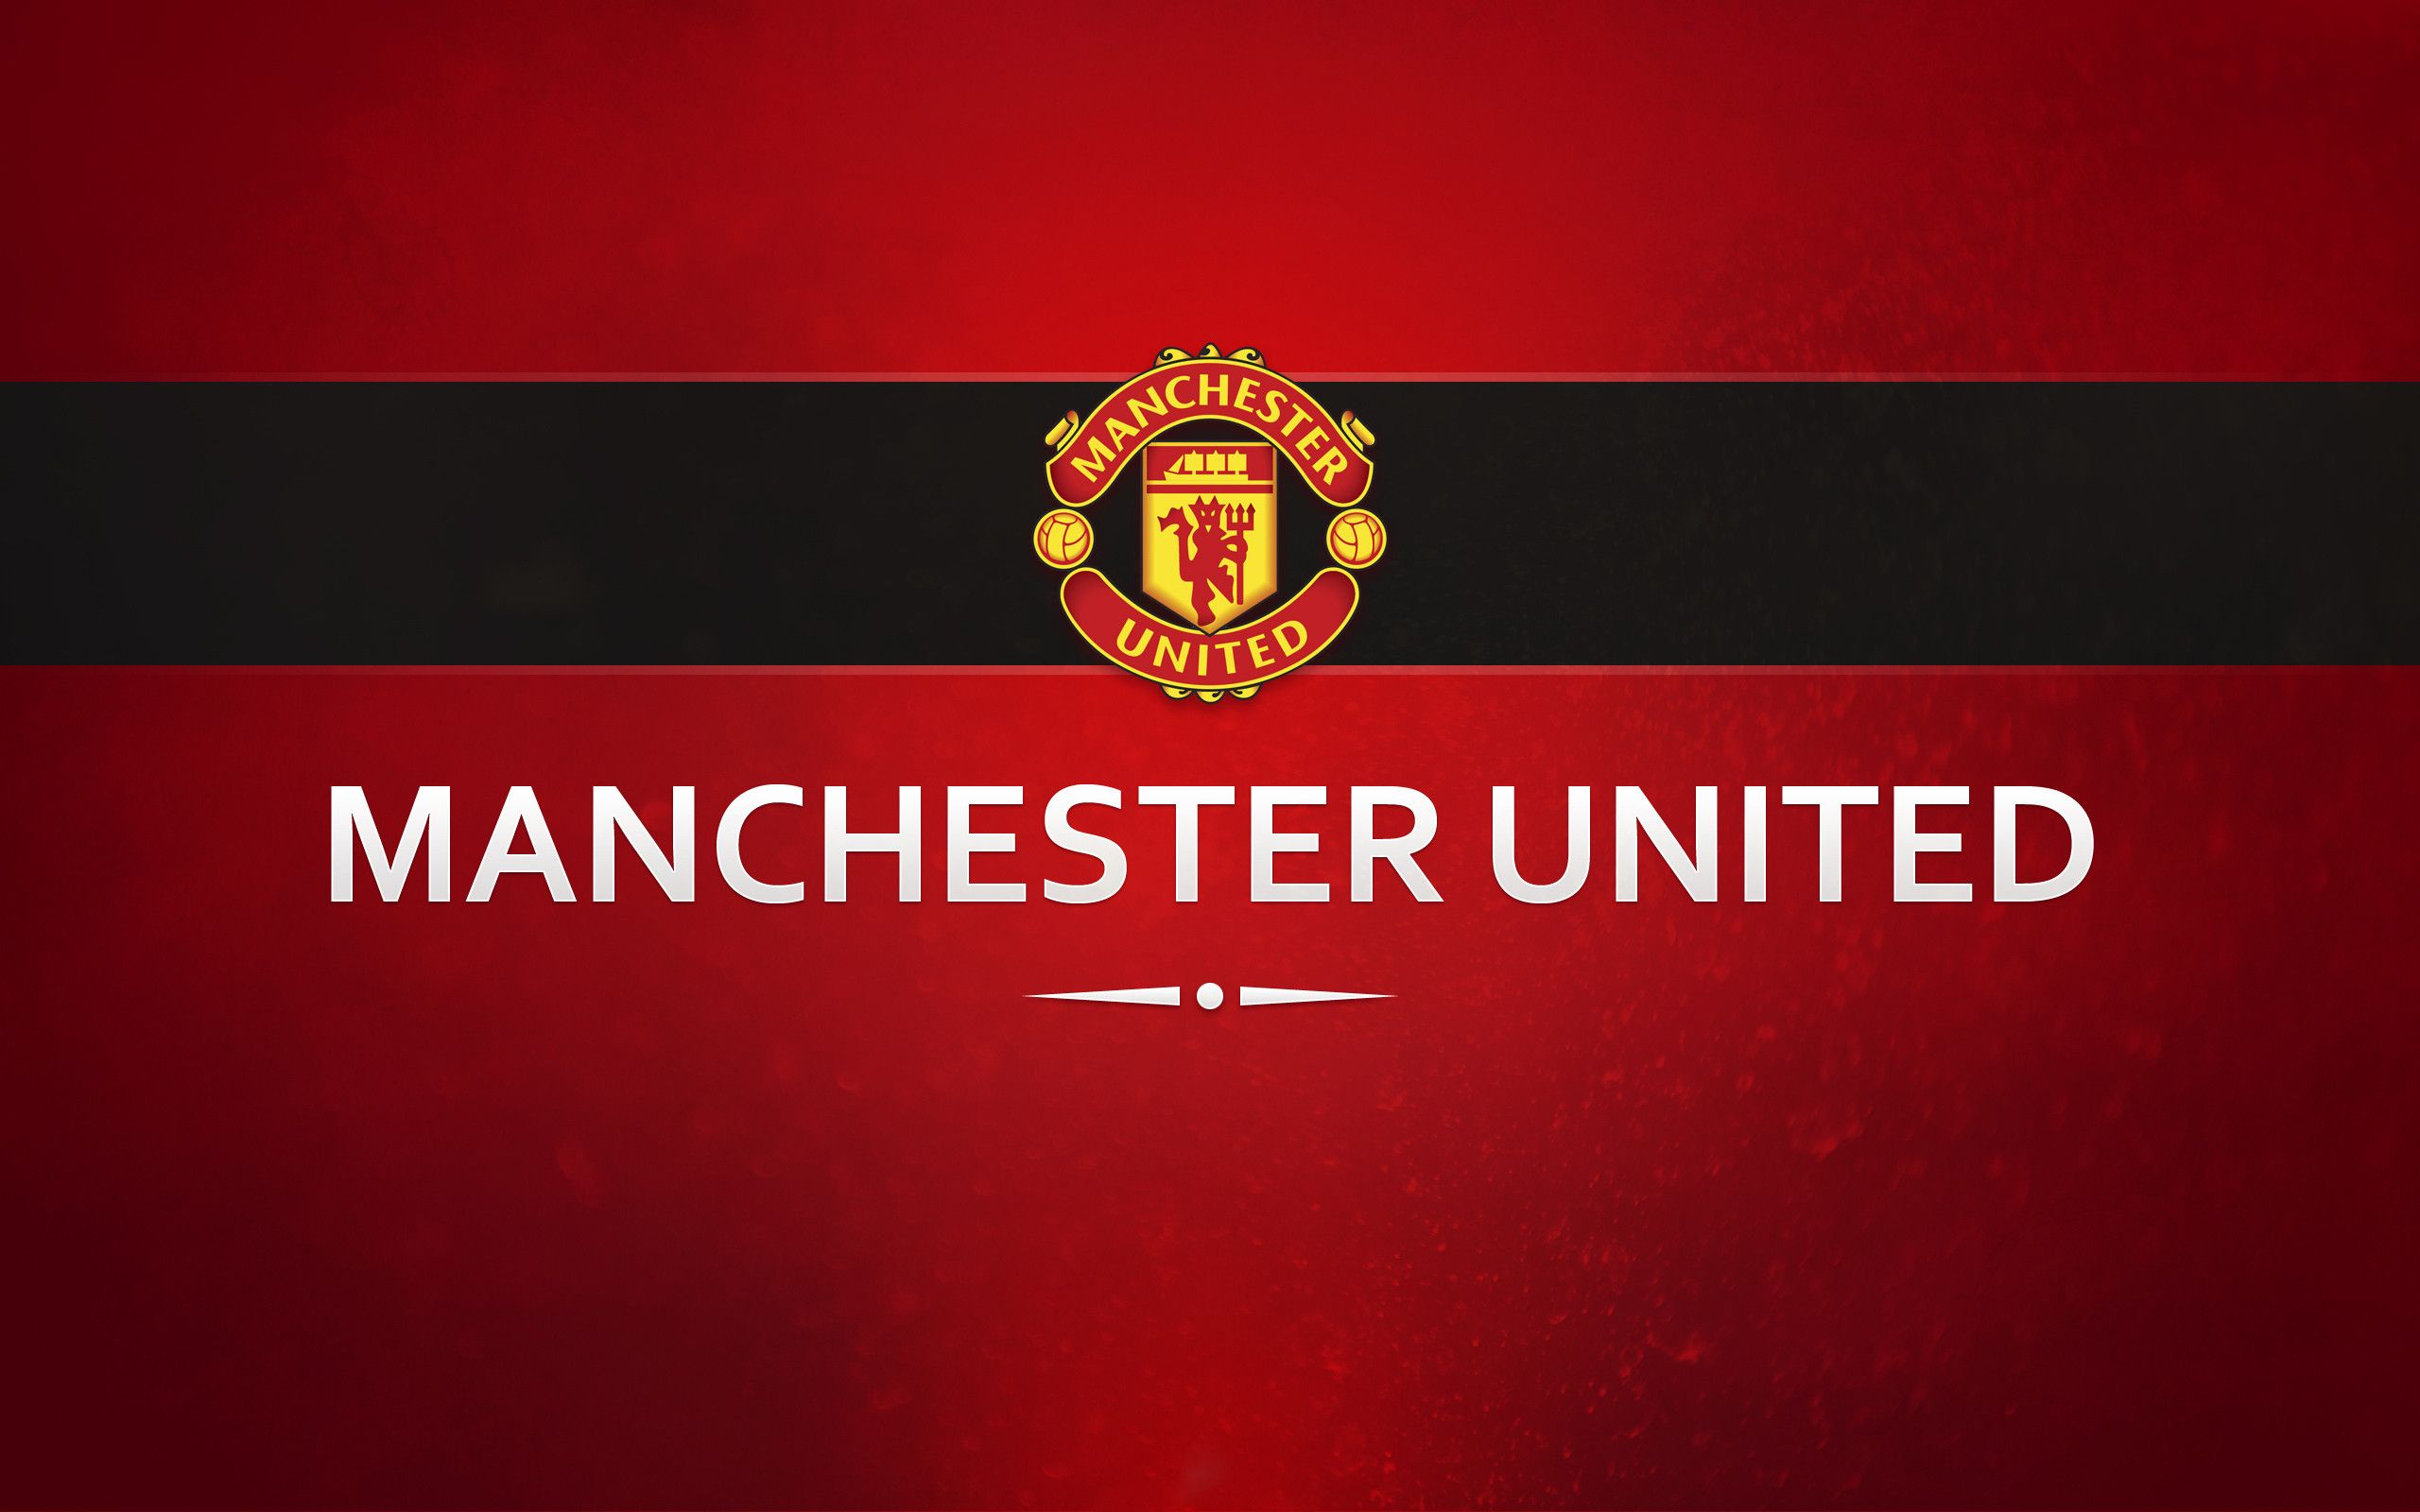 Man Utd Wallpapers